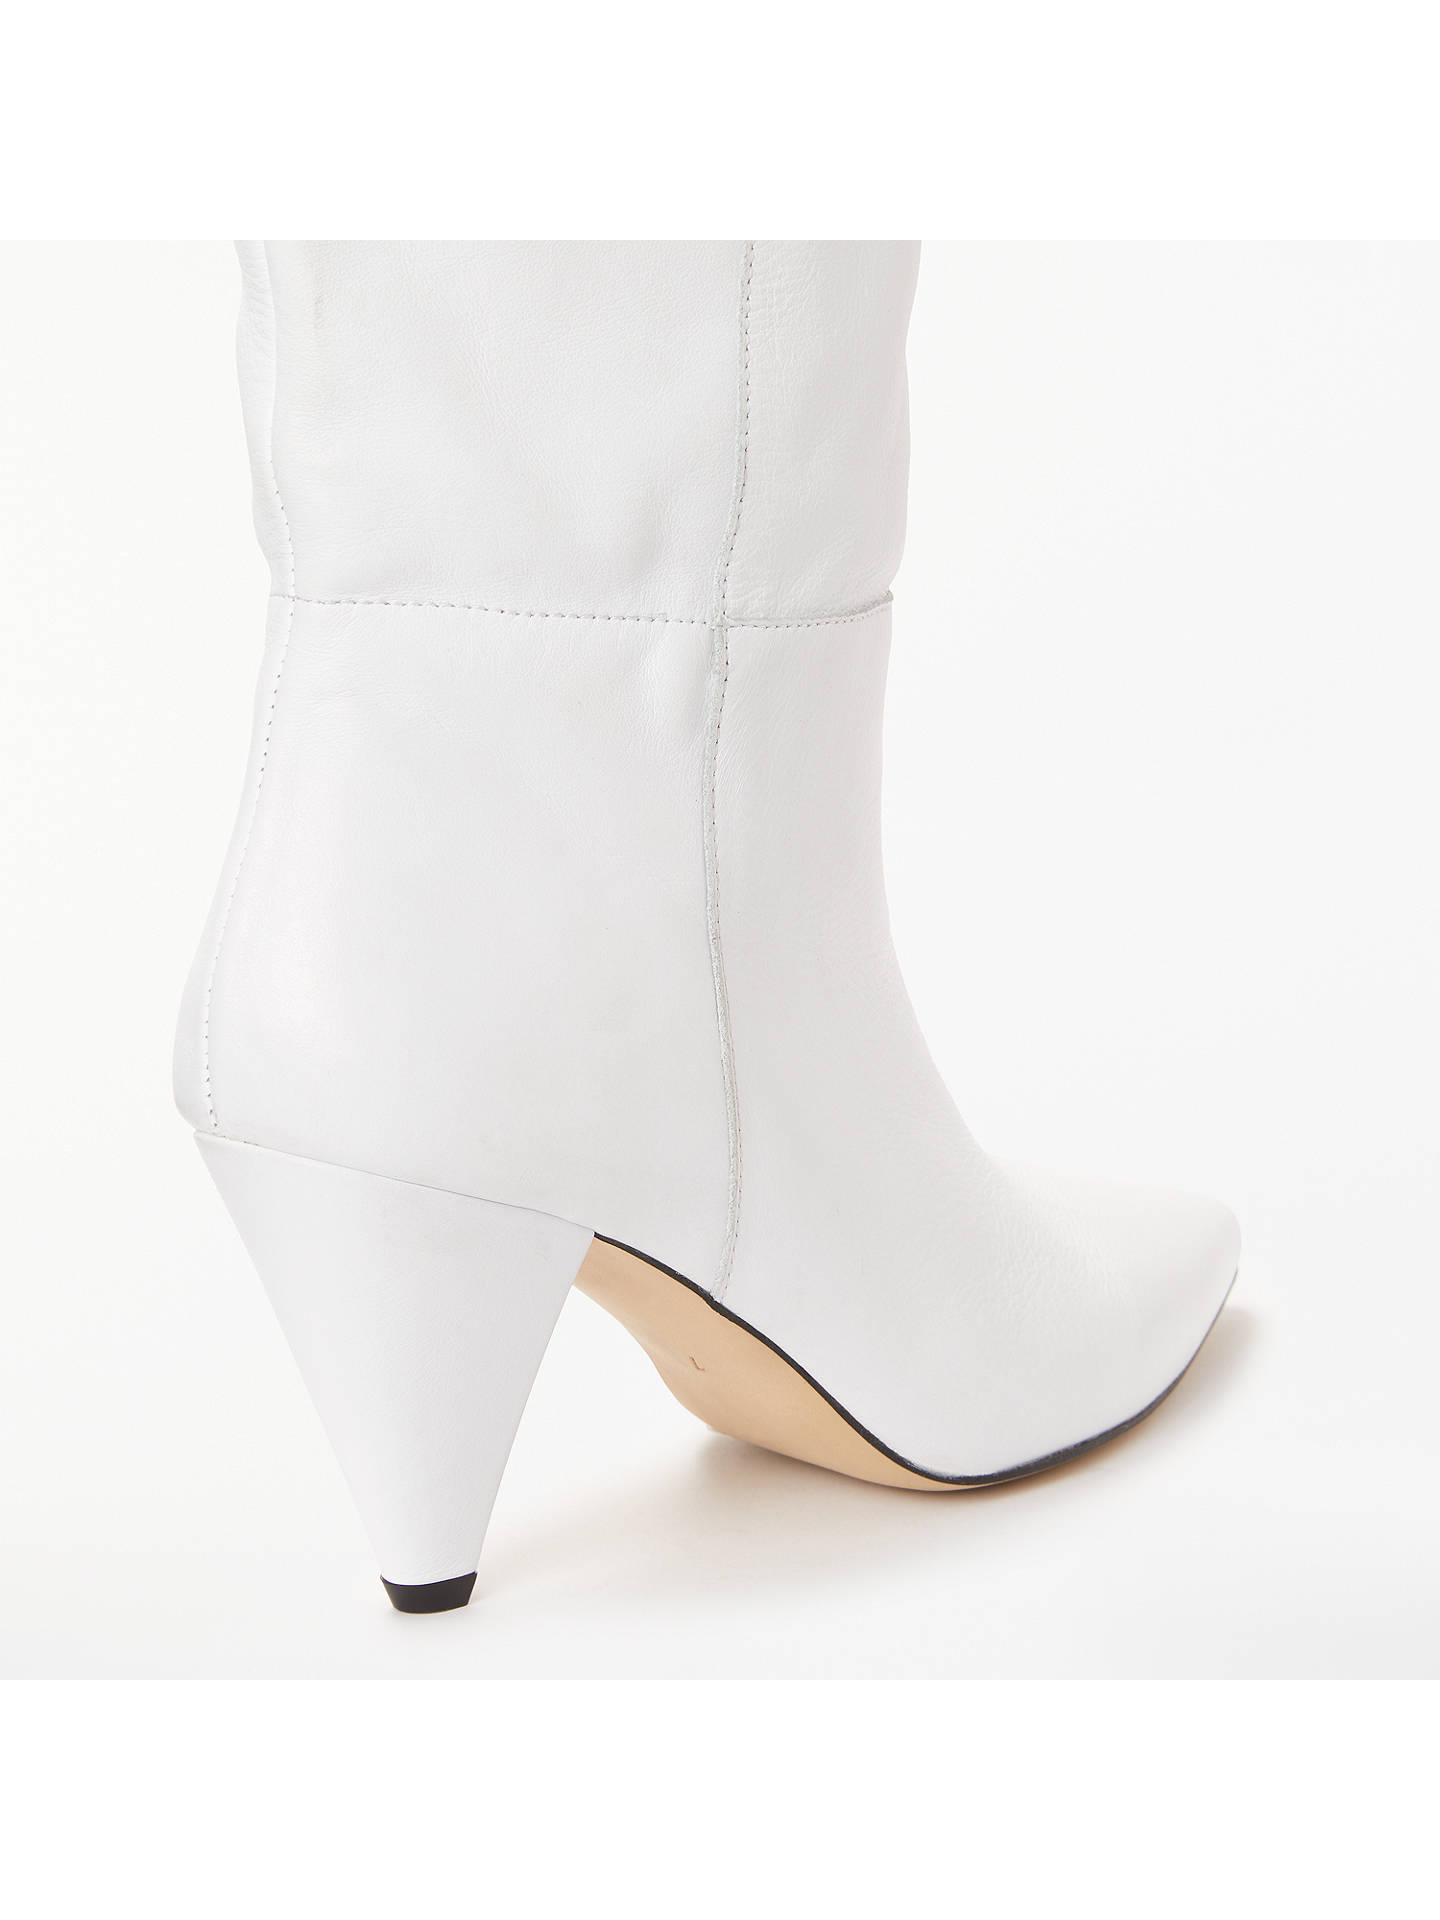 BuyKin Sibylla Leather Cone Heel Knee High Boots, White, 7 Online at johnlewis.com